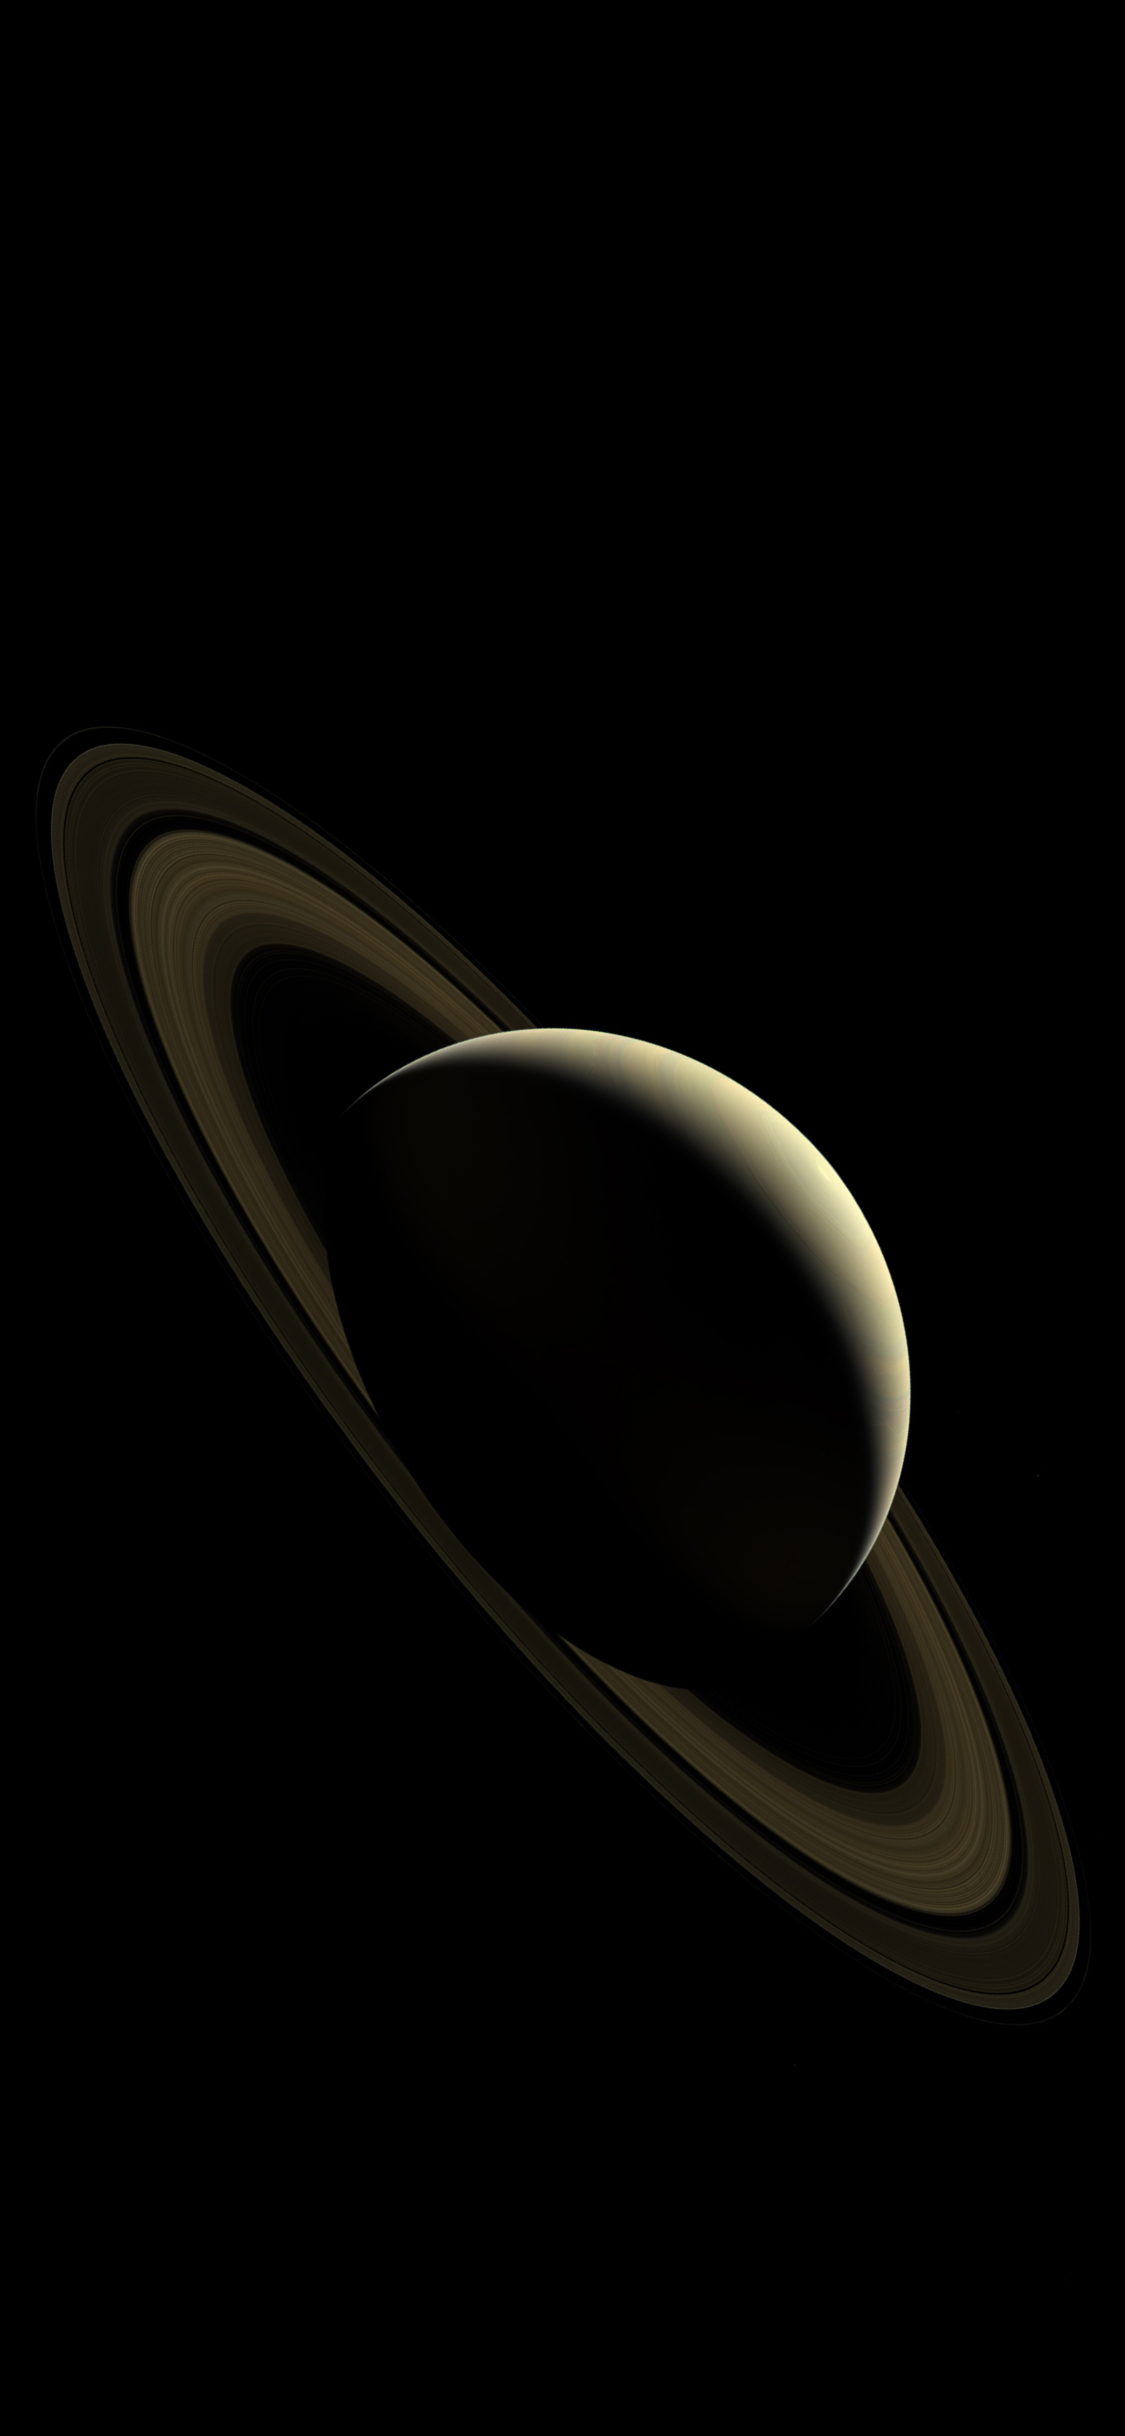 The Saturn Planet Facts Of Saturn Planet In 2020 Saturn Planet Saturn Planets